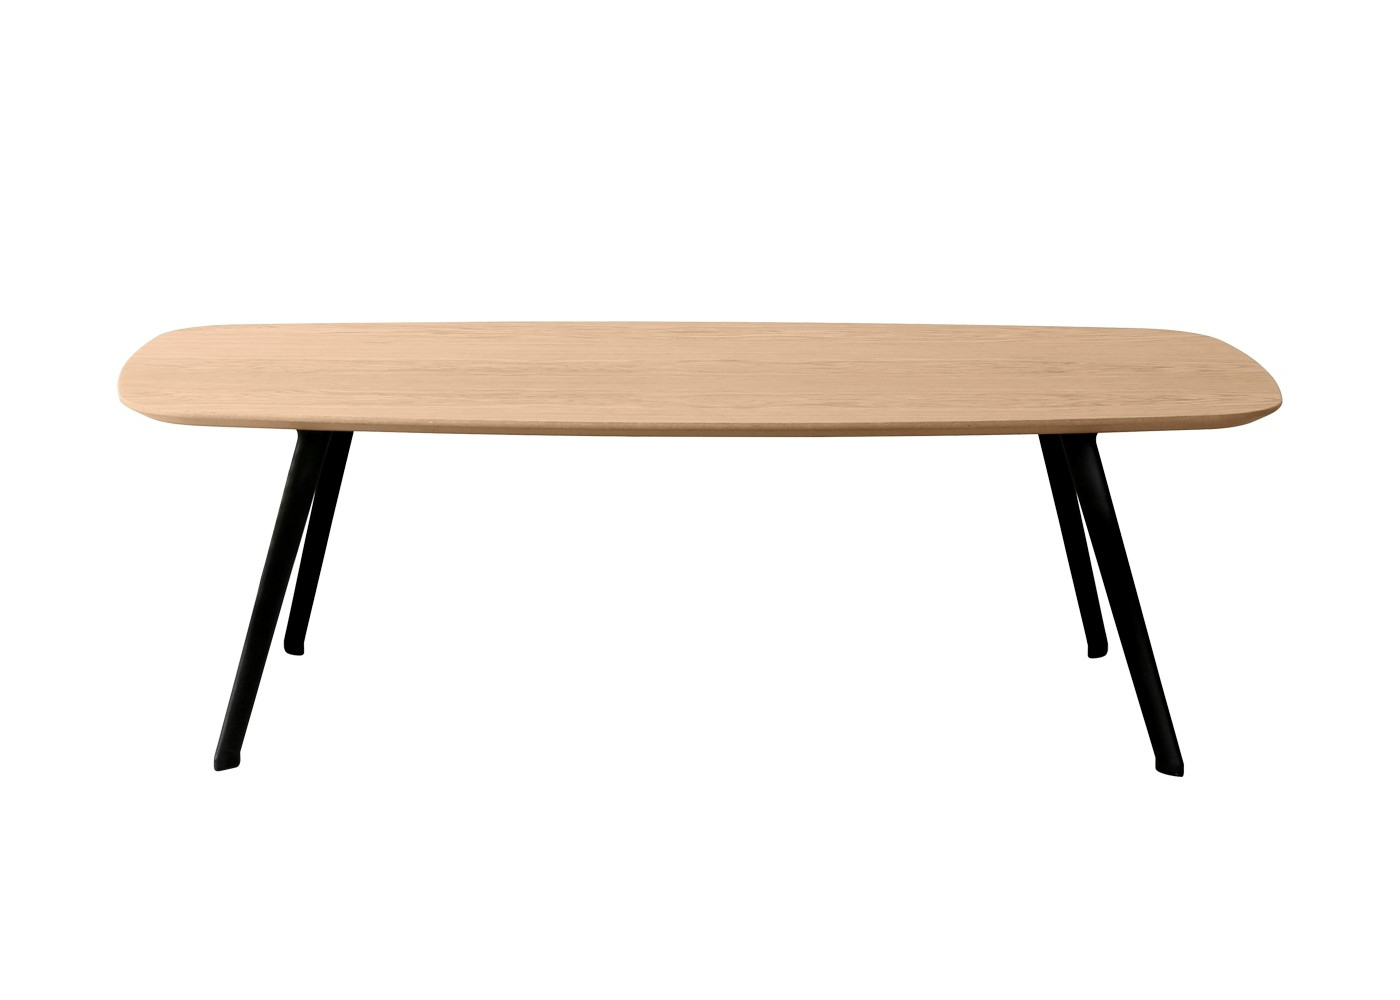 Heal's Intended For Preferred Rectangular Coffee Tables With Brass Legs (View 17 of 20)